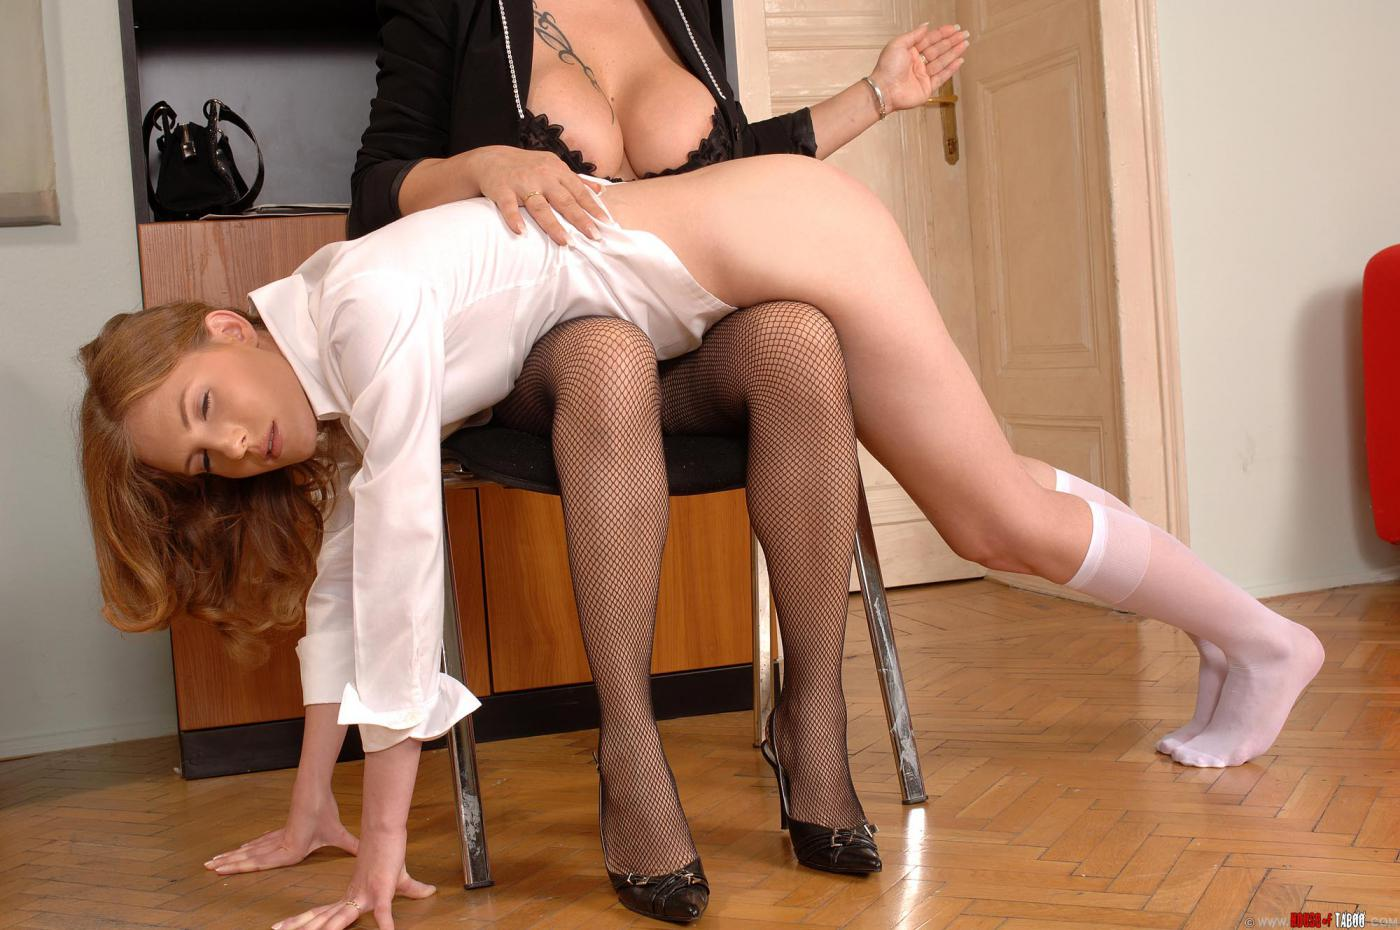 Your strict lesbian spanking sounds